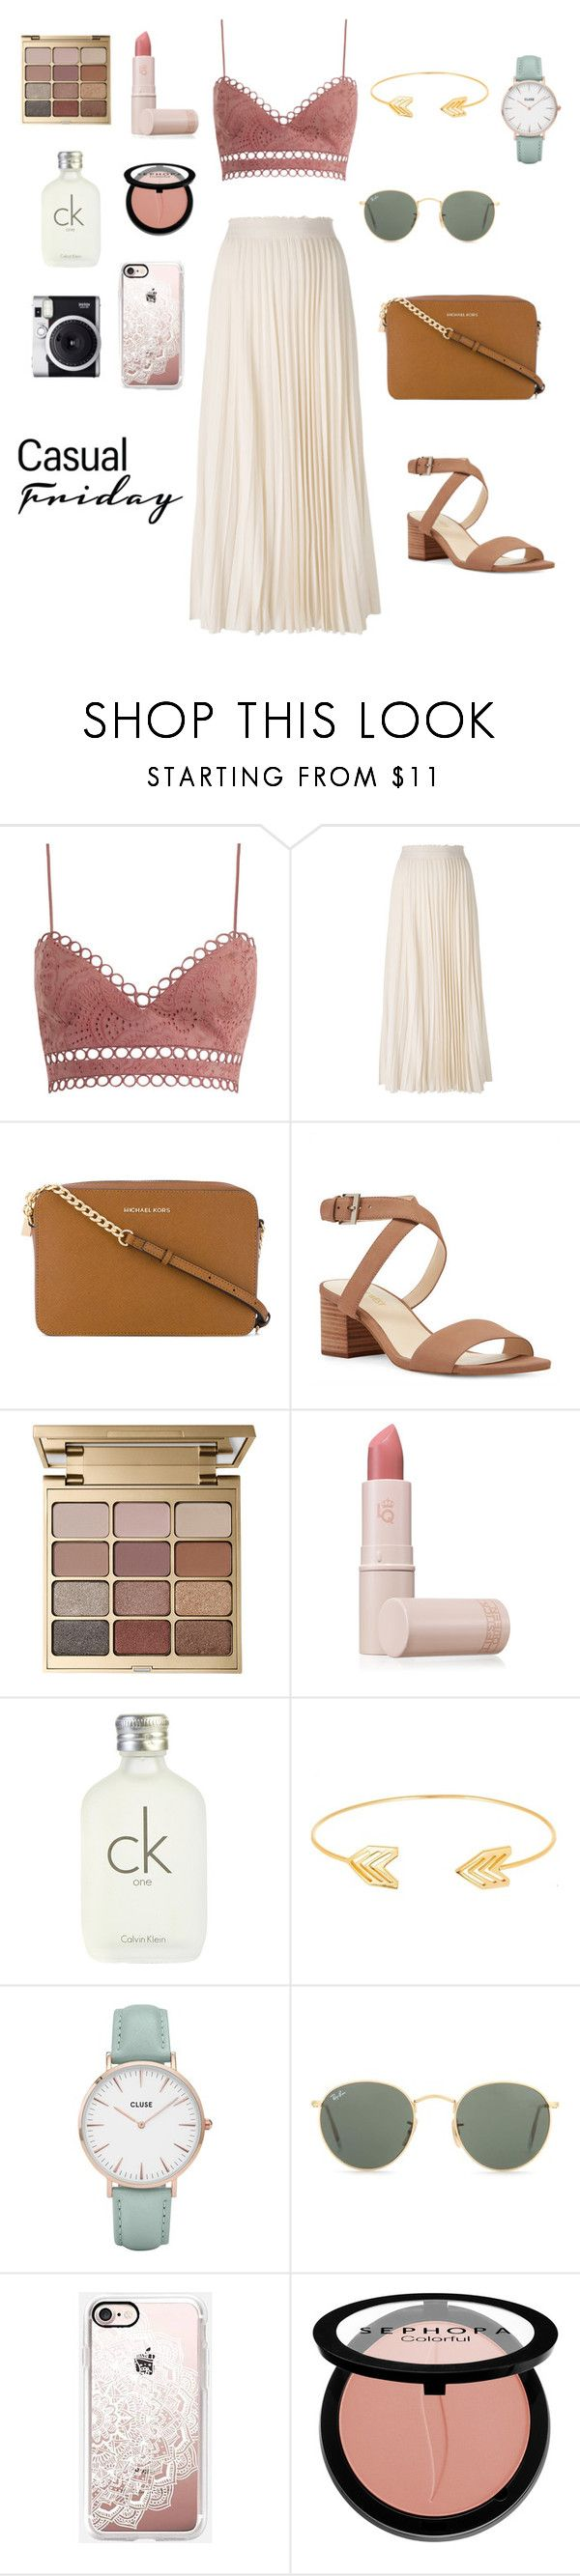 """""""Casual  Friday"""" by itsnadiaaaa on Polyvore featuring Zimmermann, Les Copains, MICHAEL Michael Kors, Nine West, Stila, Lipstick Queen, Calvin Klein, Lord & Taylor, CLUSE and Ray-Ban"""